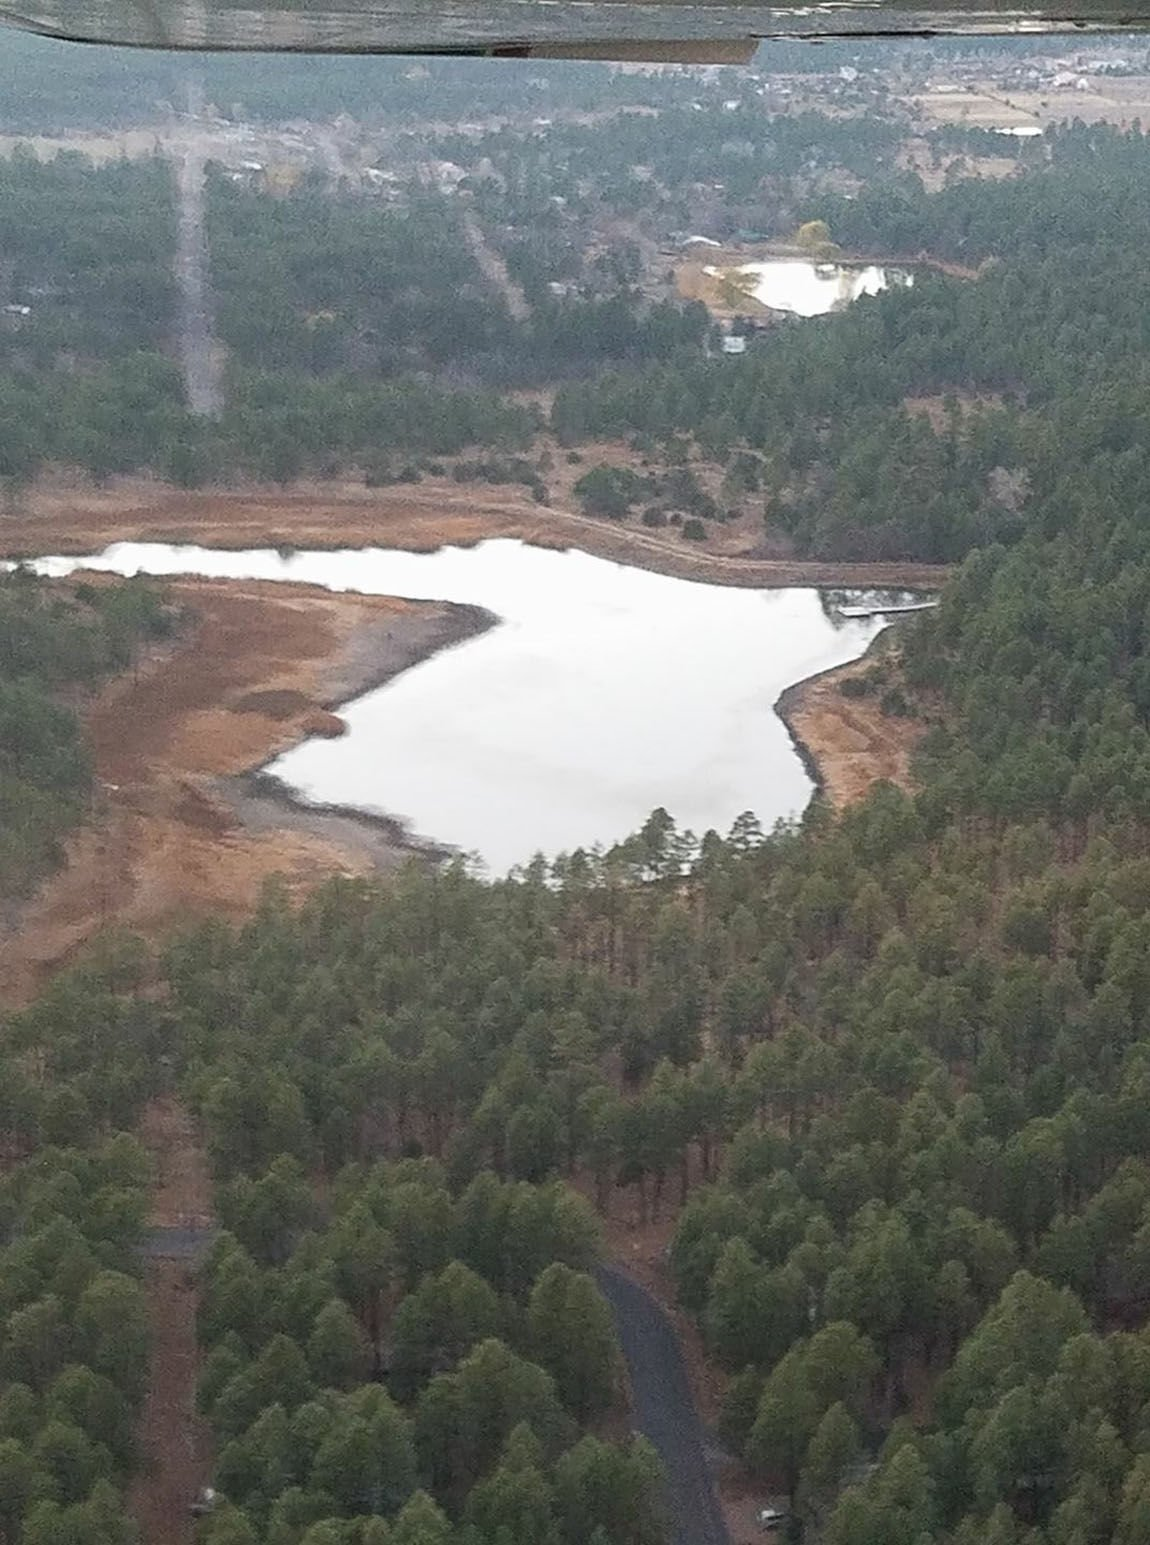 Drought continues in Arizona